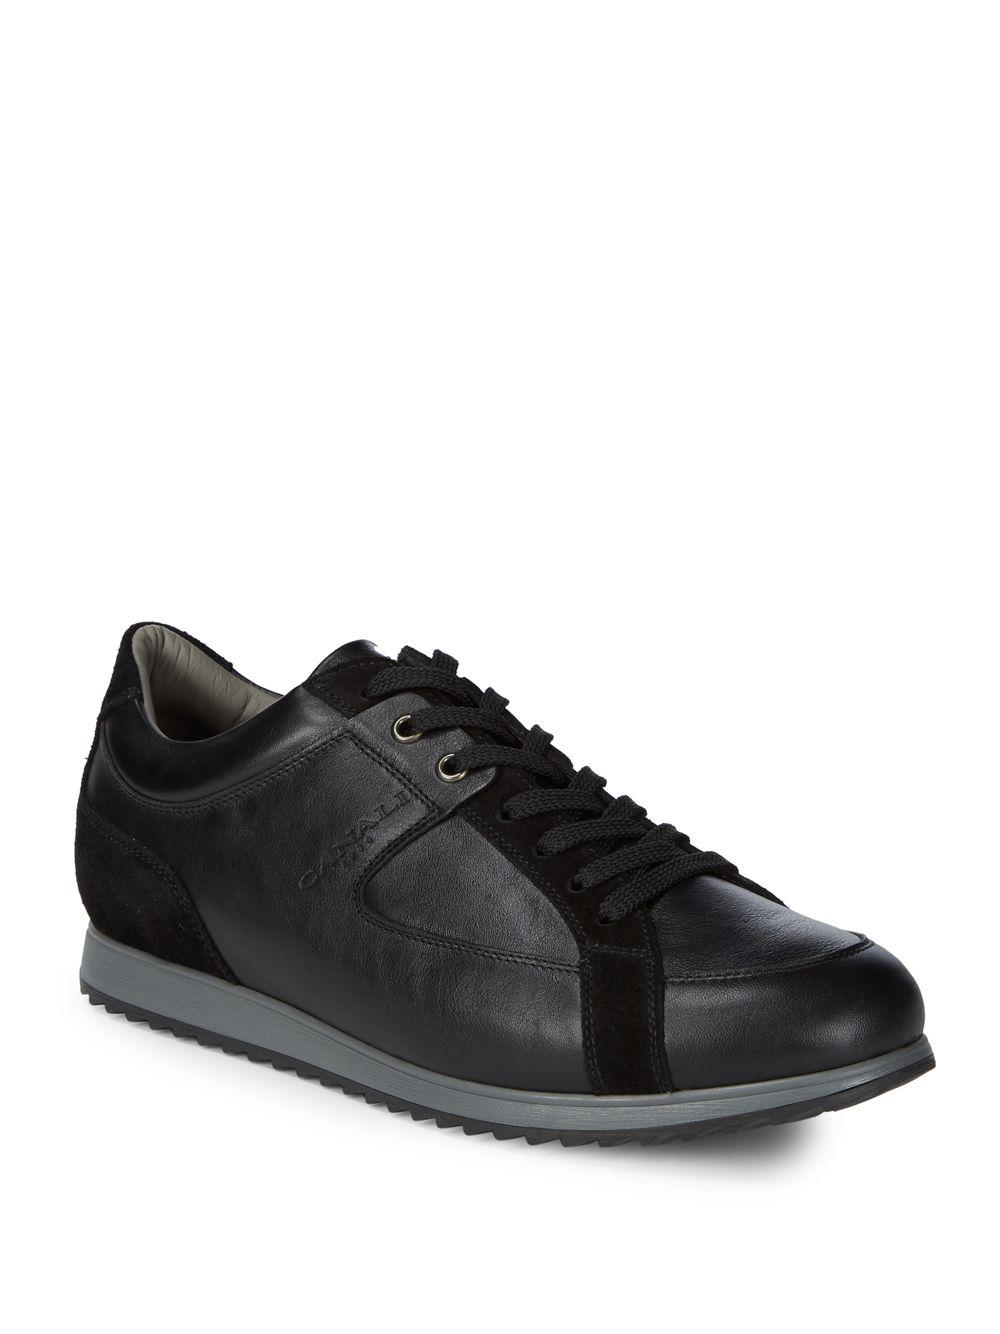 CANALI Leather Lace Ups NgXVJfy6